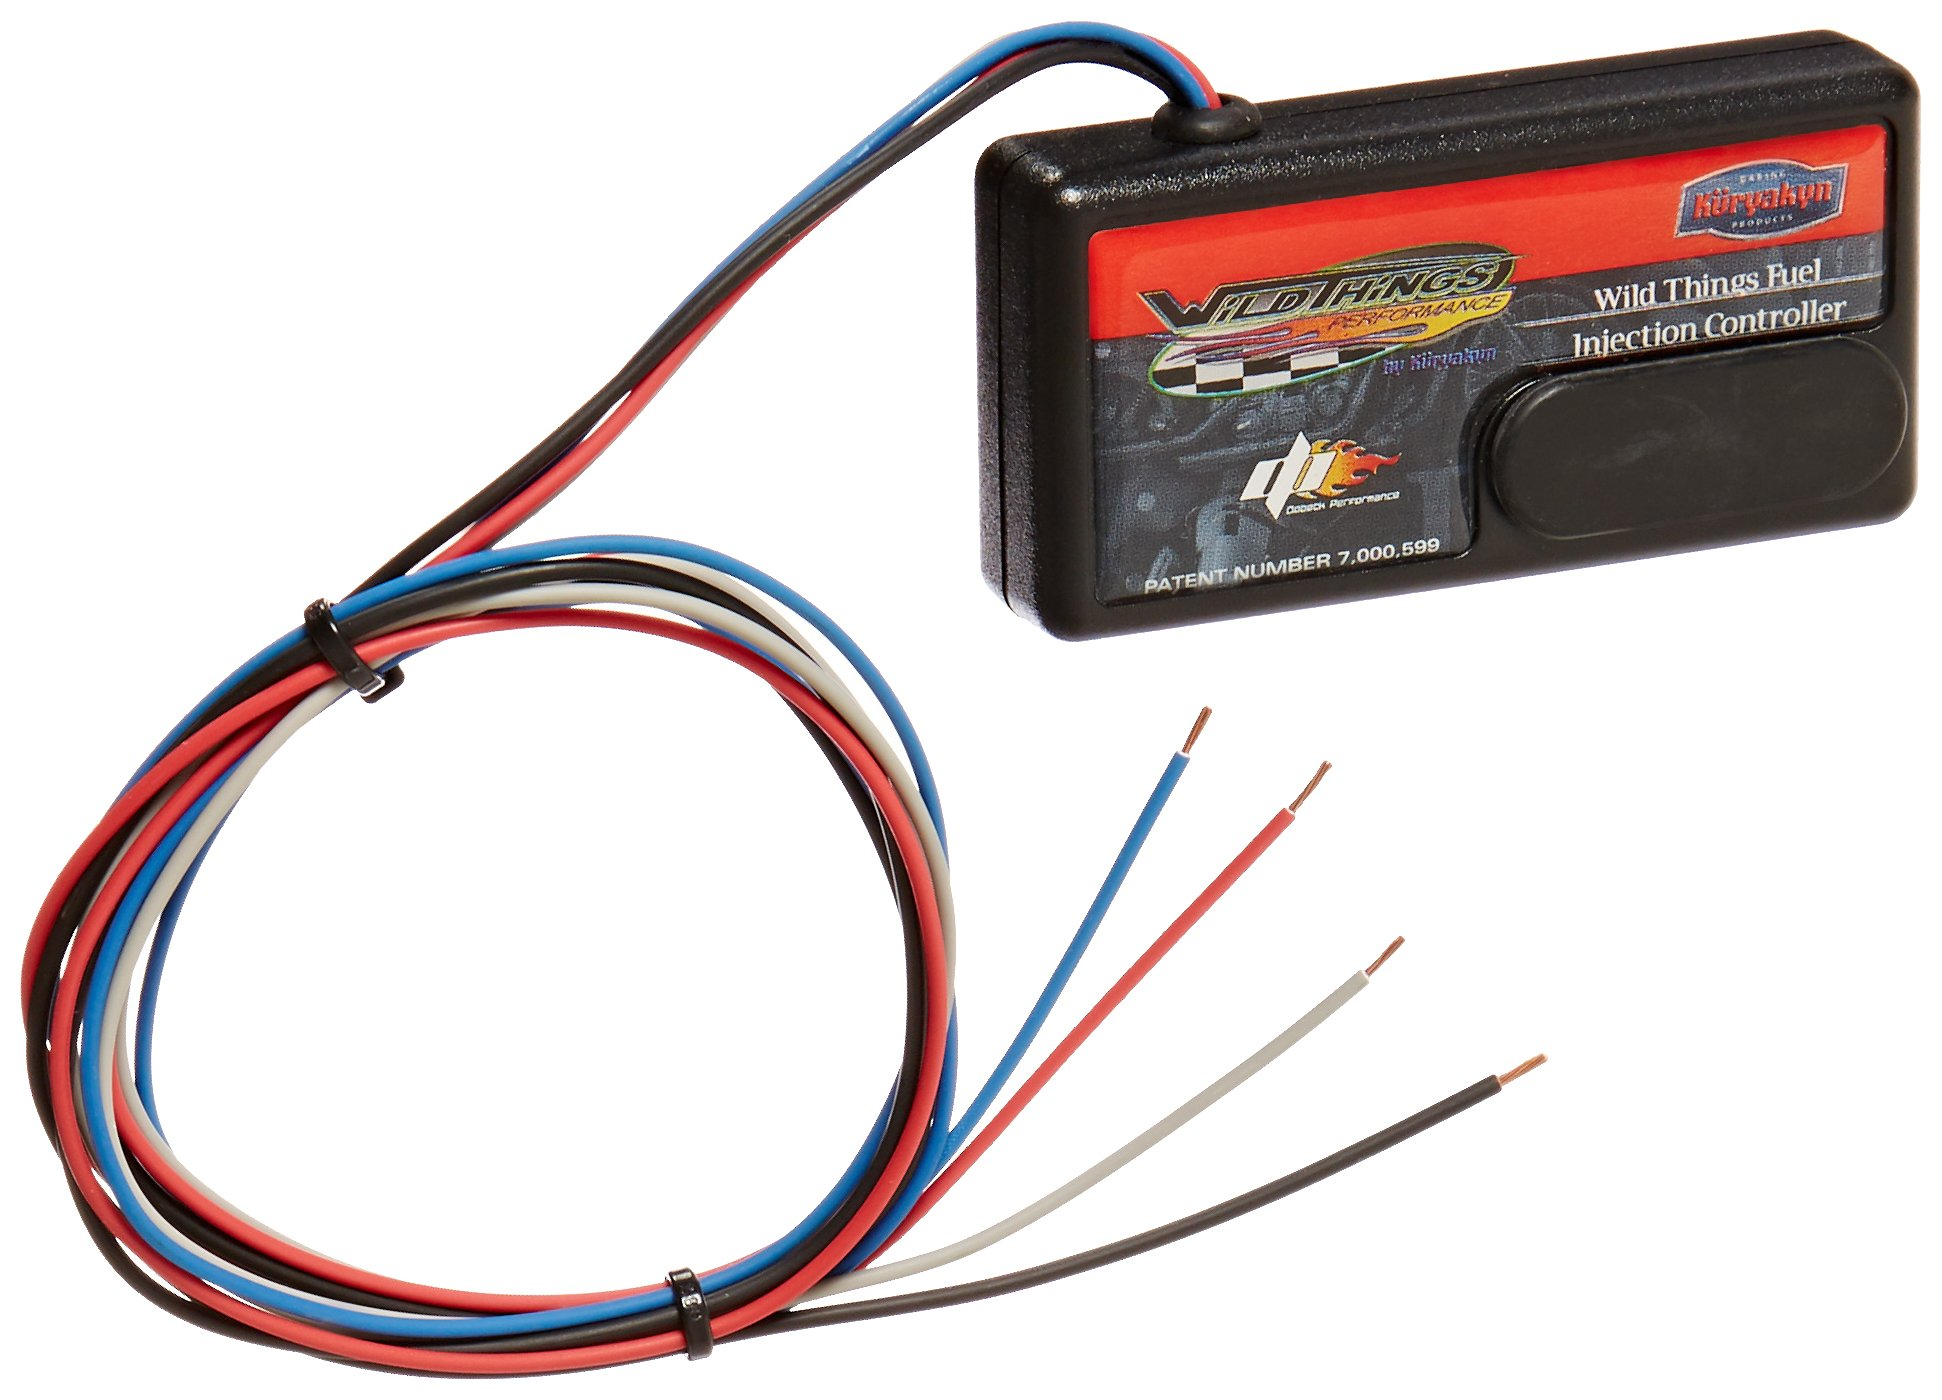 Kuryakyn 9218 Wild Things Fuel Injection Controller